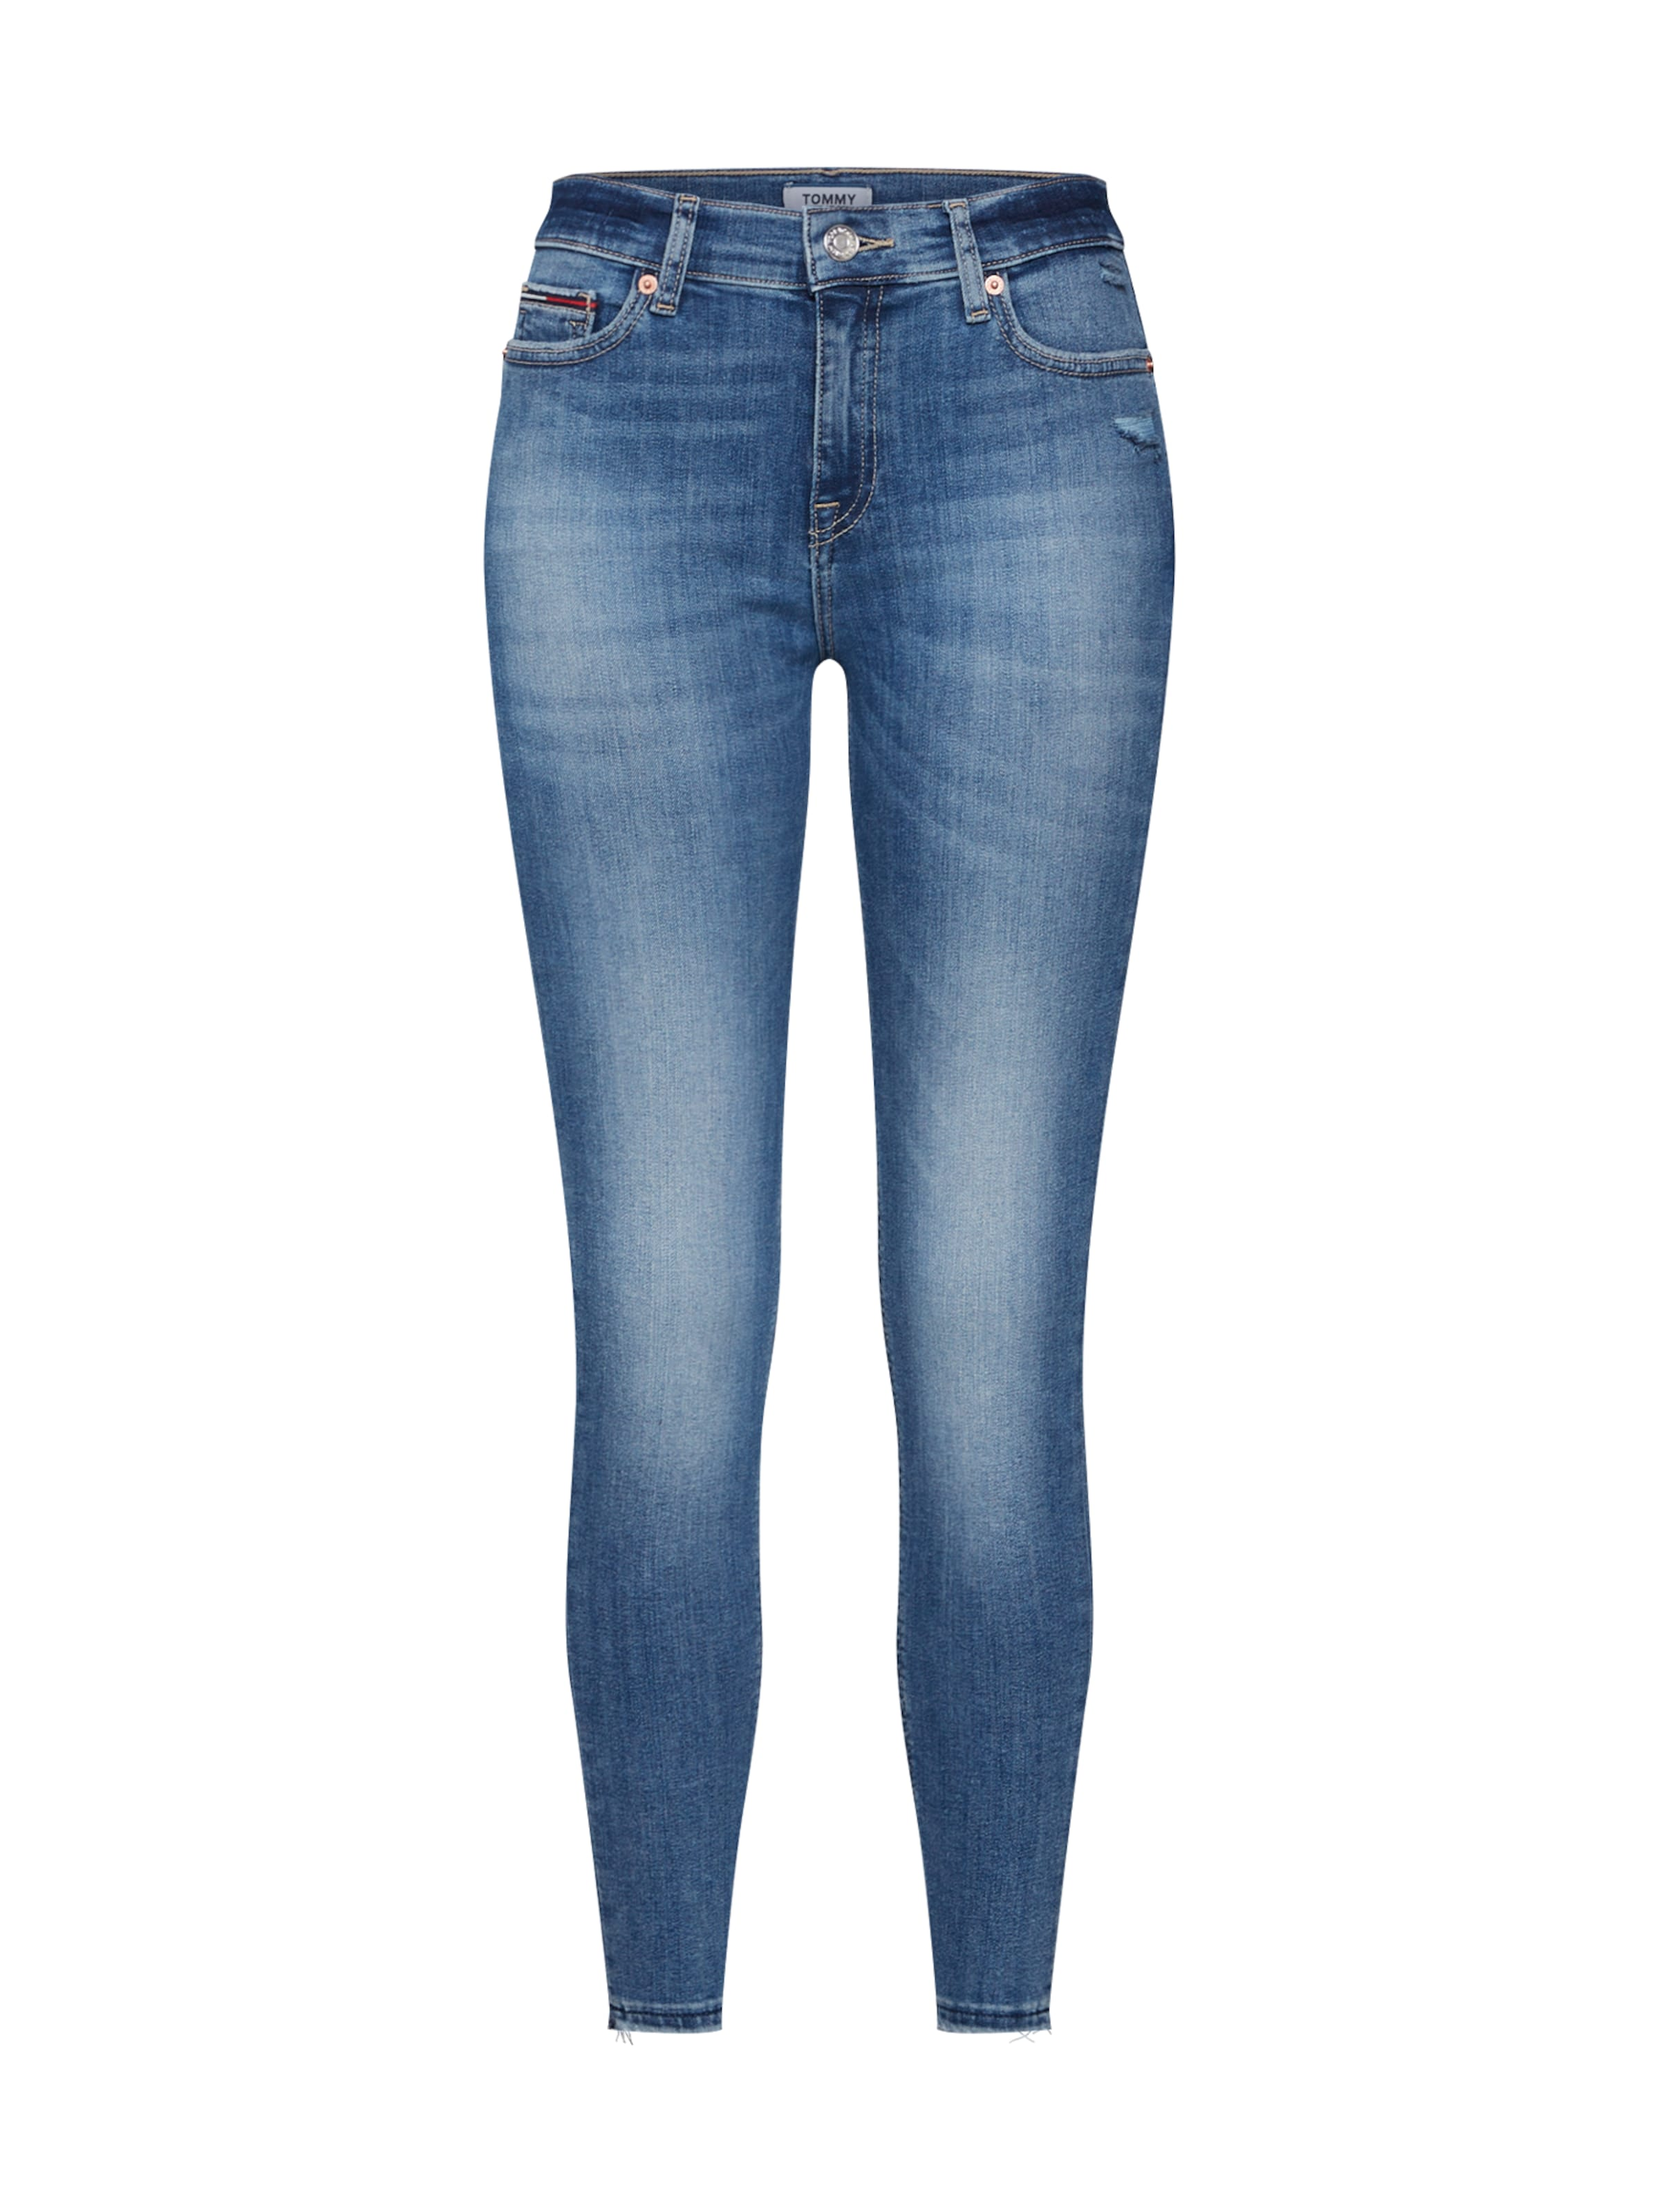 Tommy Blue In Denim In Blue Tommy Jeans Jeans 2HIED9W